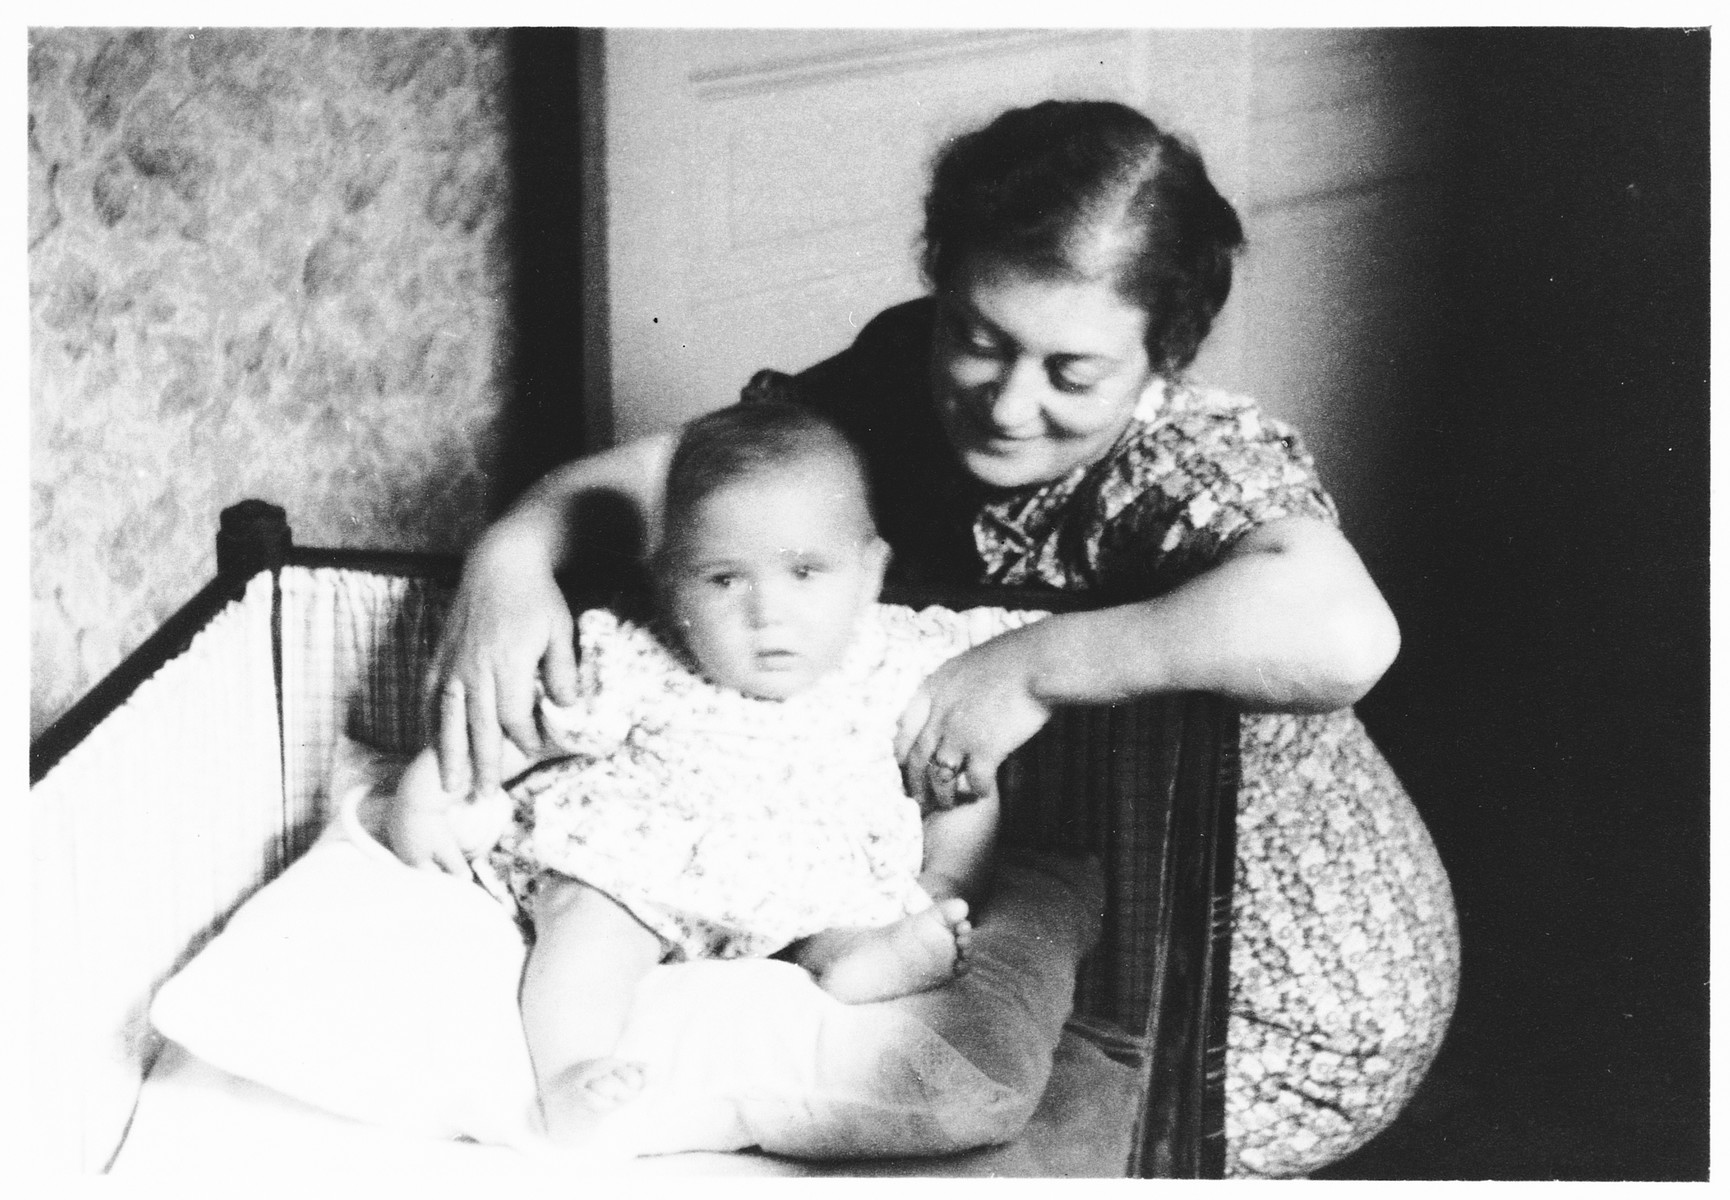 A young Jewish mother, who is living in hiding in German-occupied Belgium, visits her infant son, who is being sheltered at a convent outside Brussels.  Pictured is Lea  Abramowicz with her son, Georges.